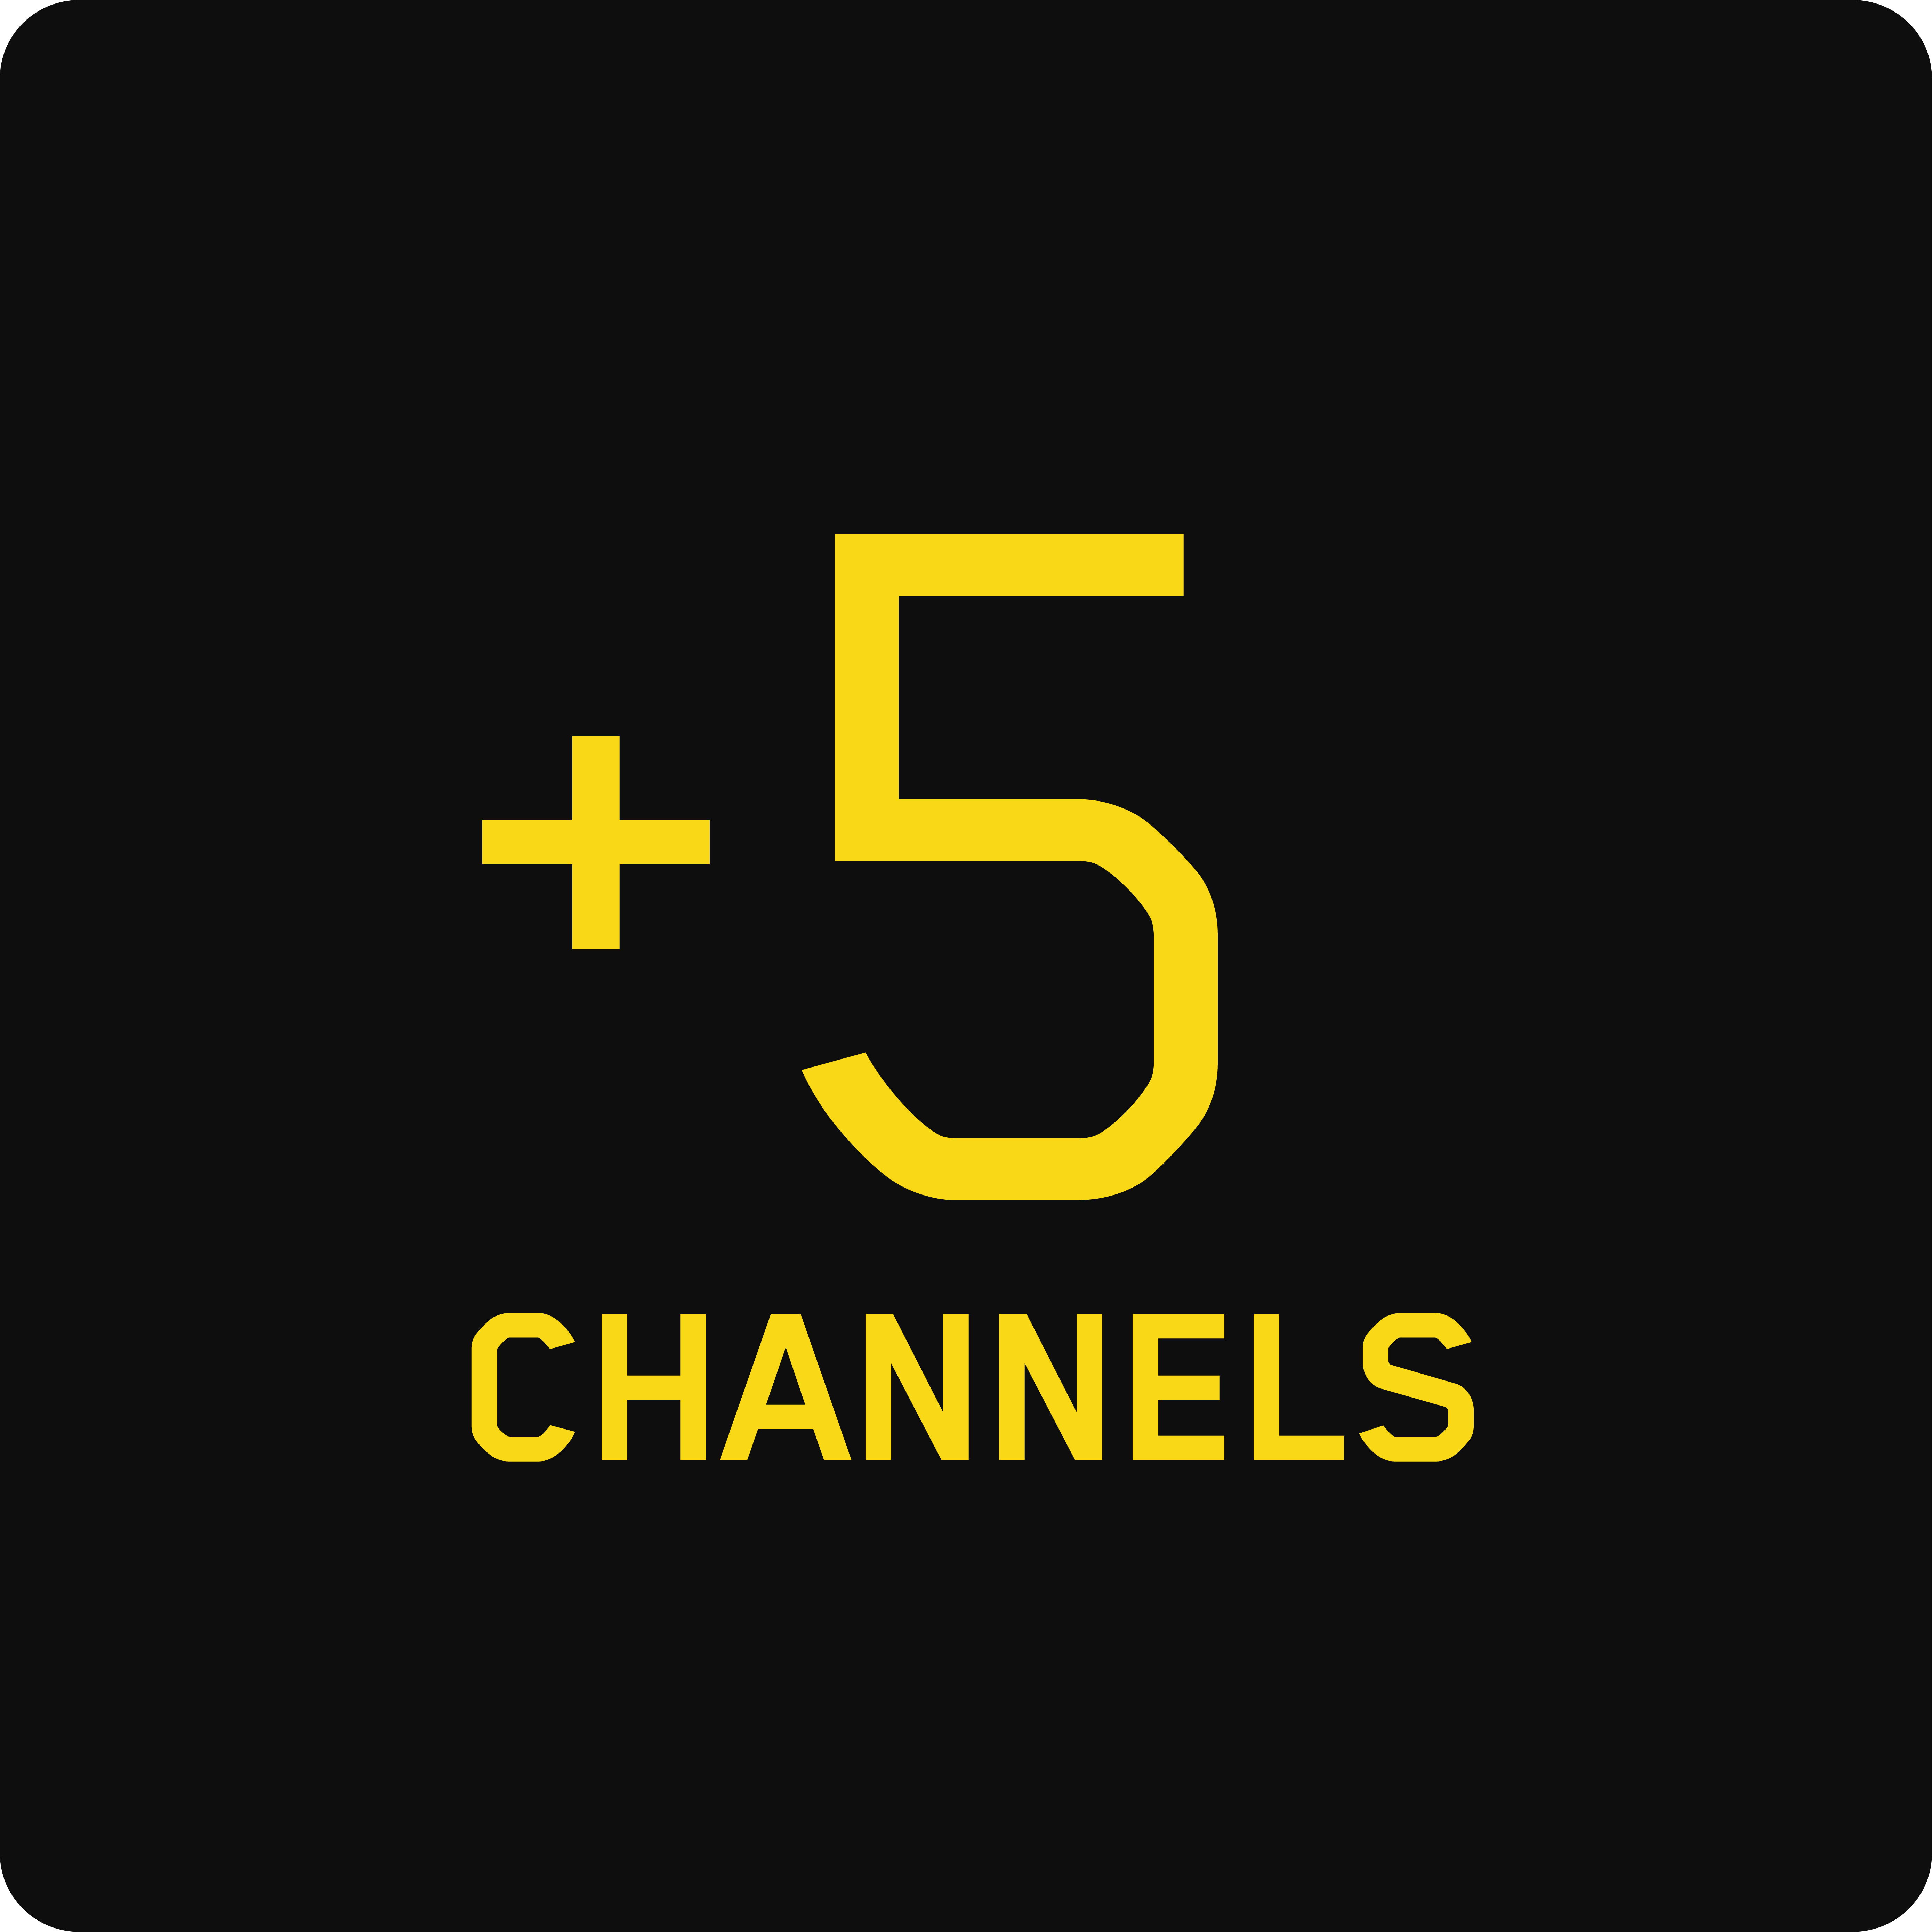 5 Extra Channels